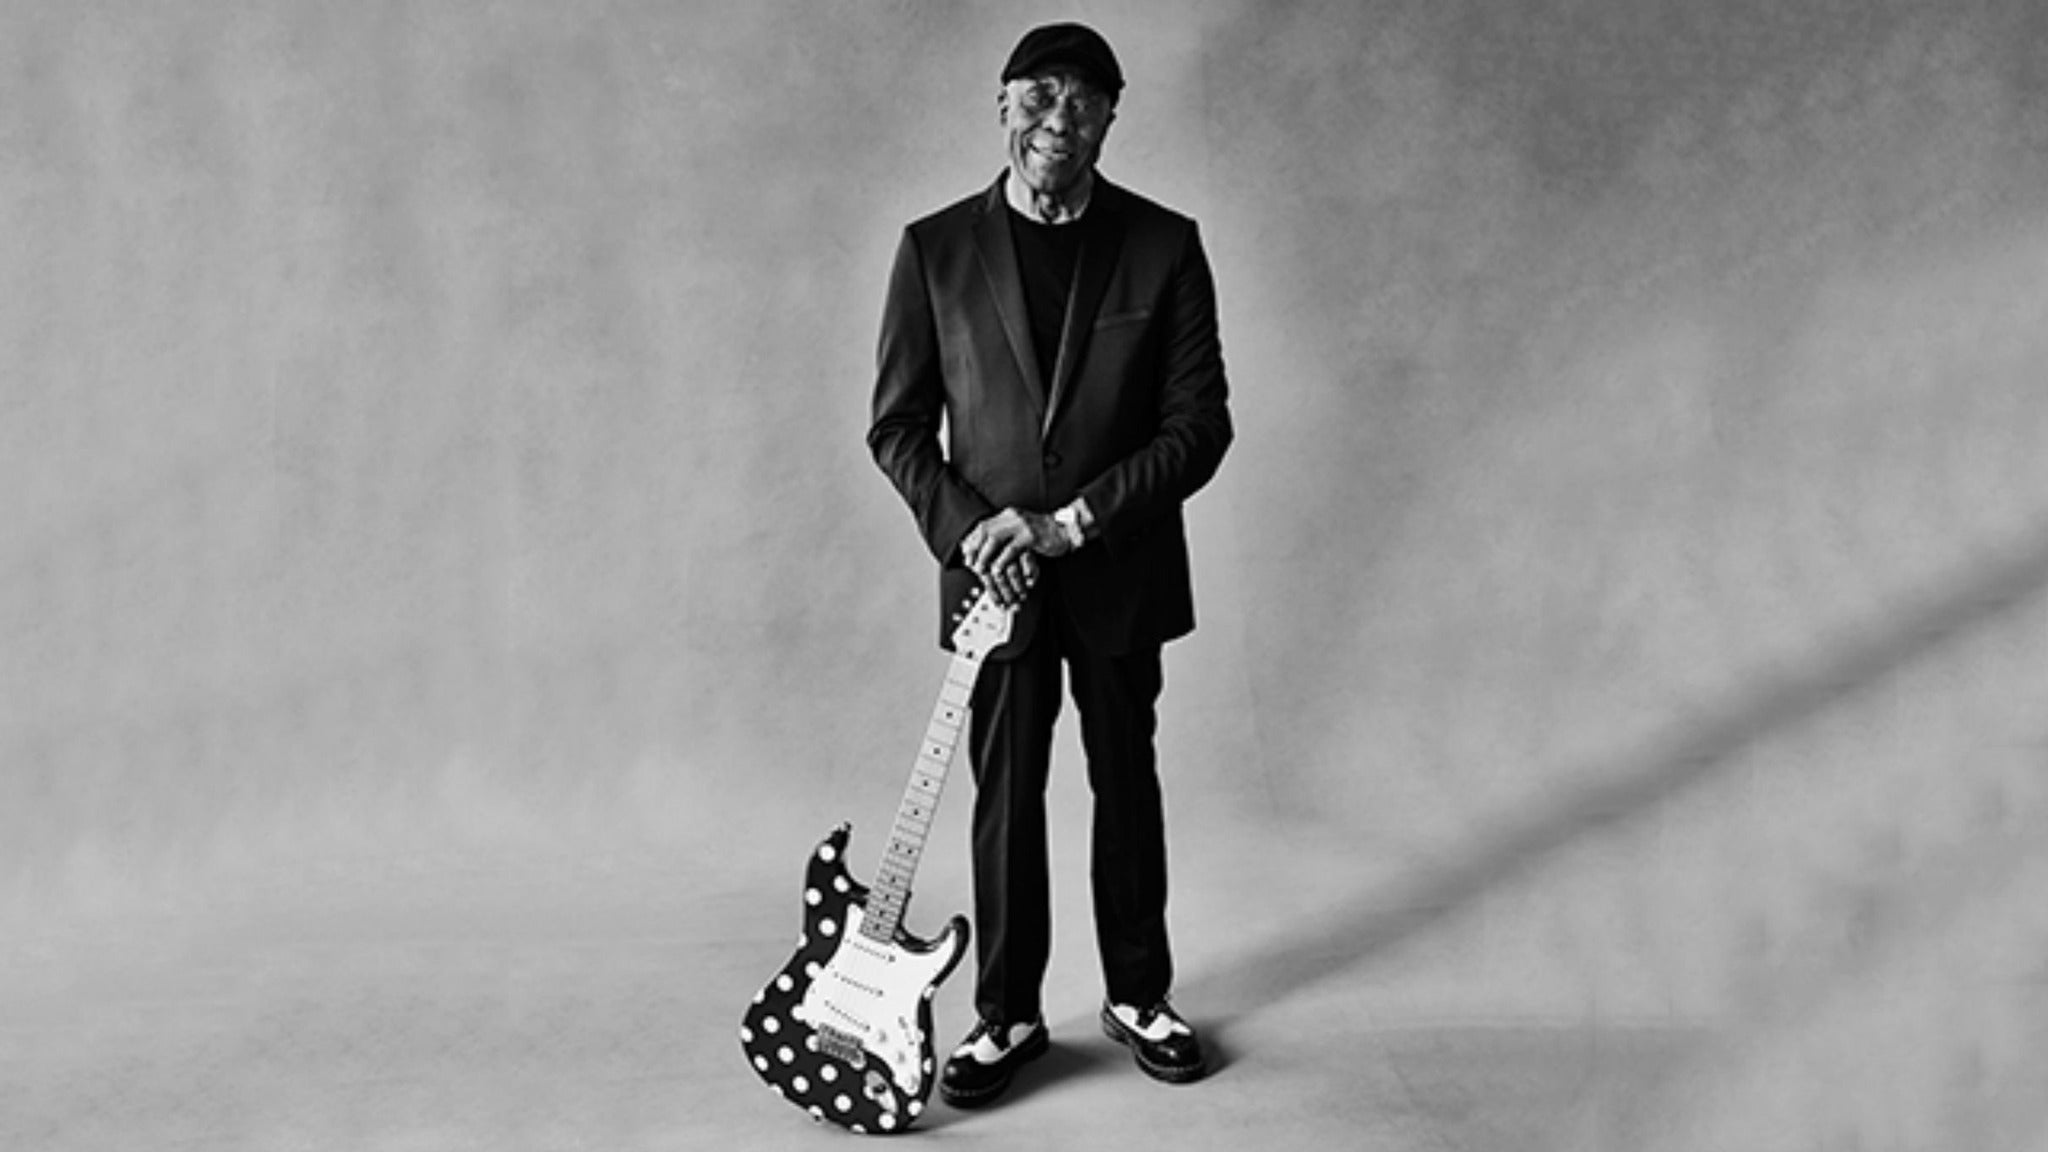 Buddy Guy at Paramount Theatre-Oakland